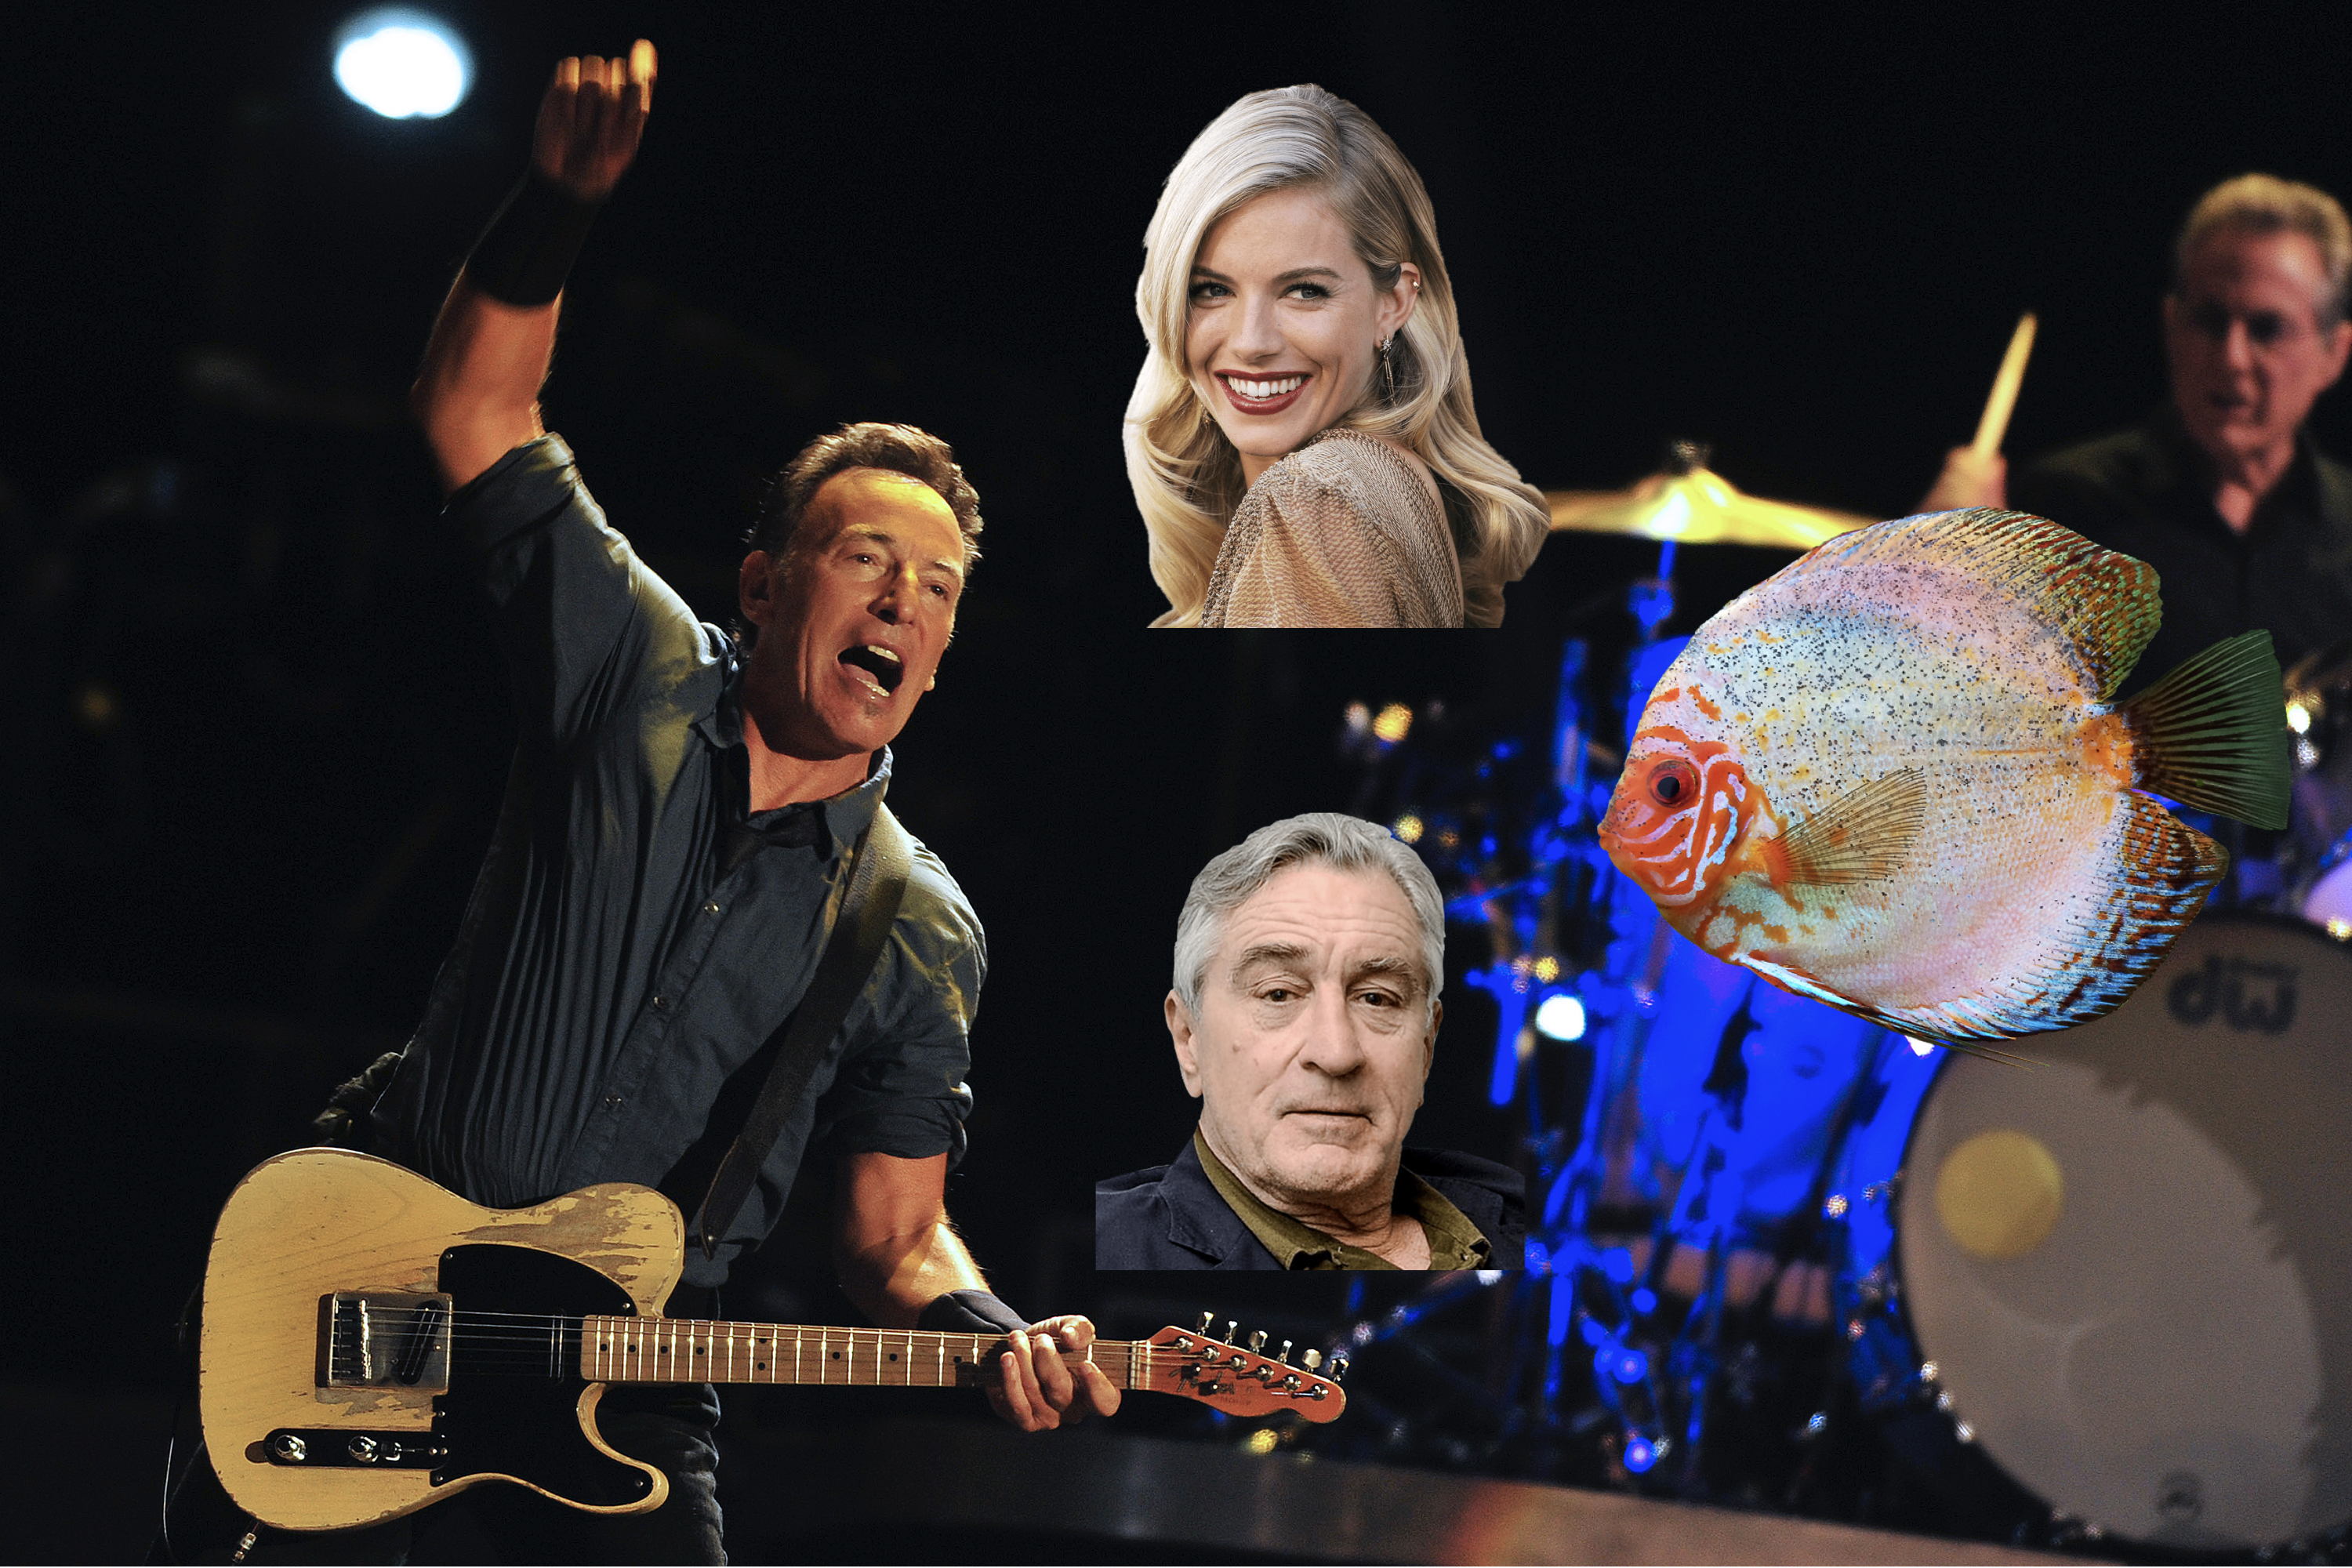 Bruce Springsteen's Atlantic City could be a London seafood bar